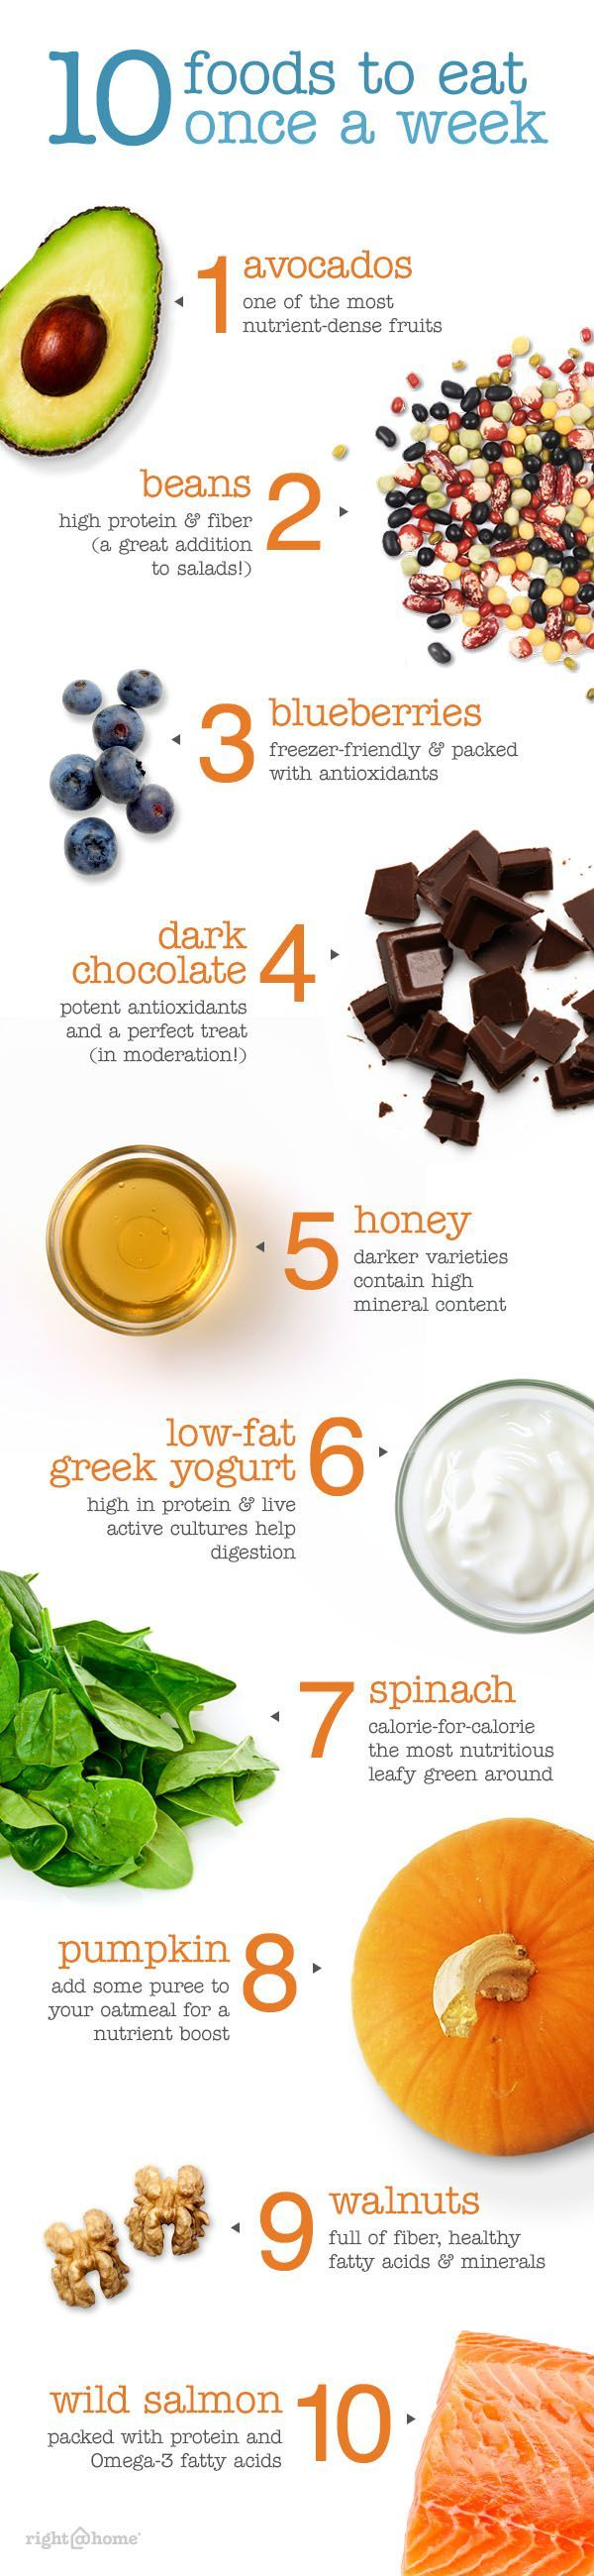 10 Foods You Should Eat Once a Week | Favorite Pins